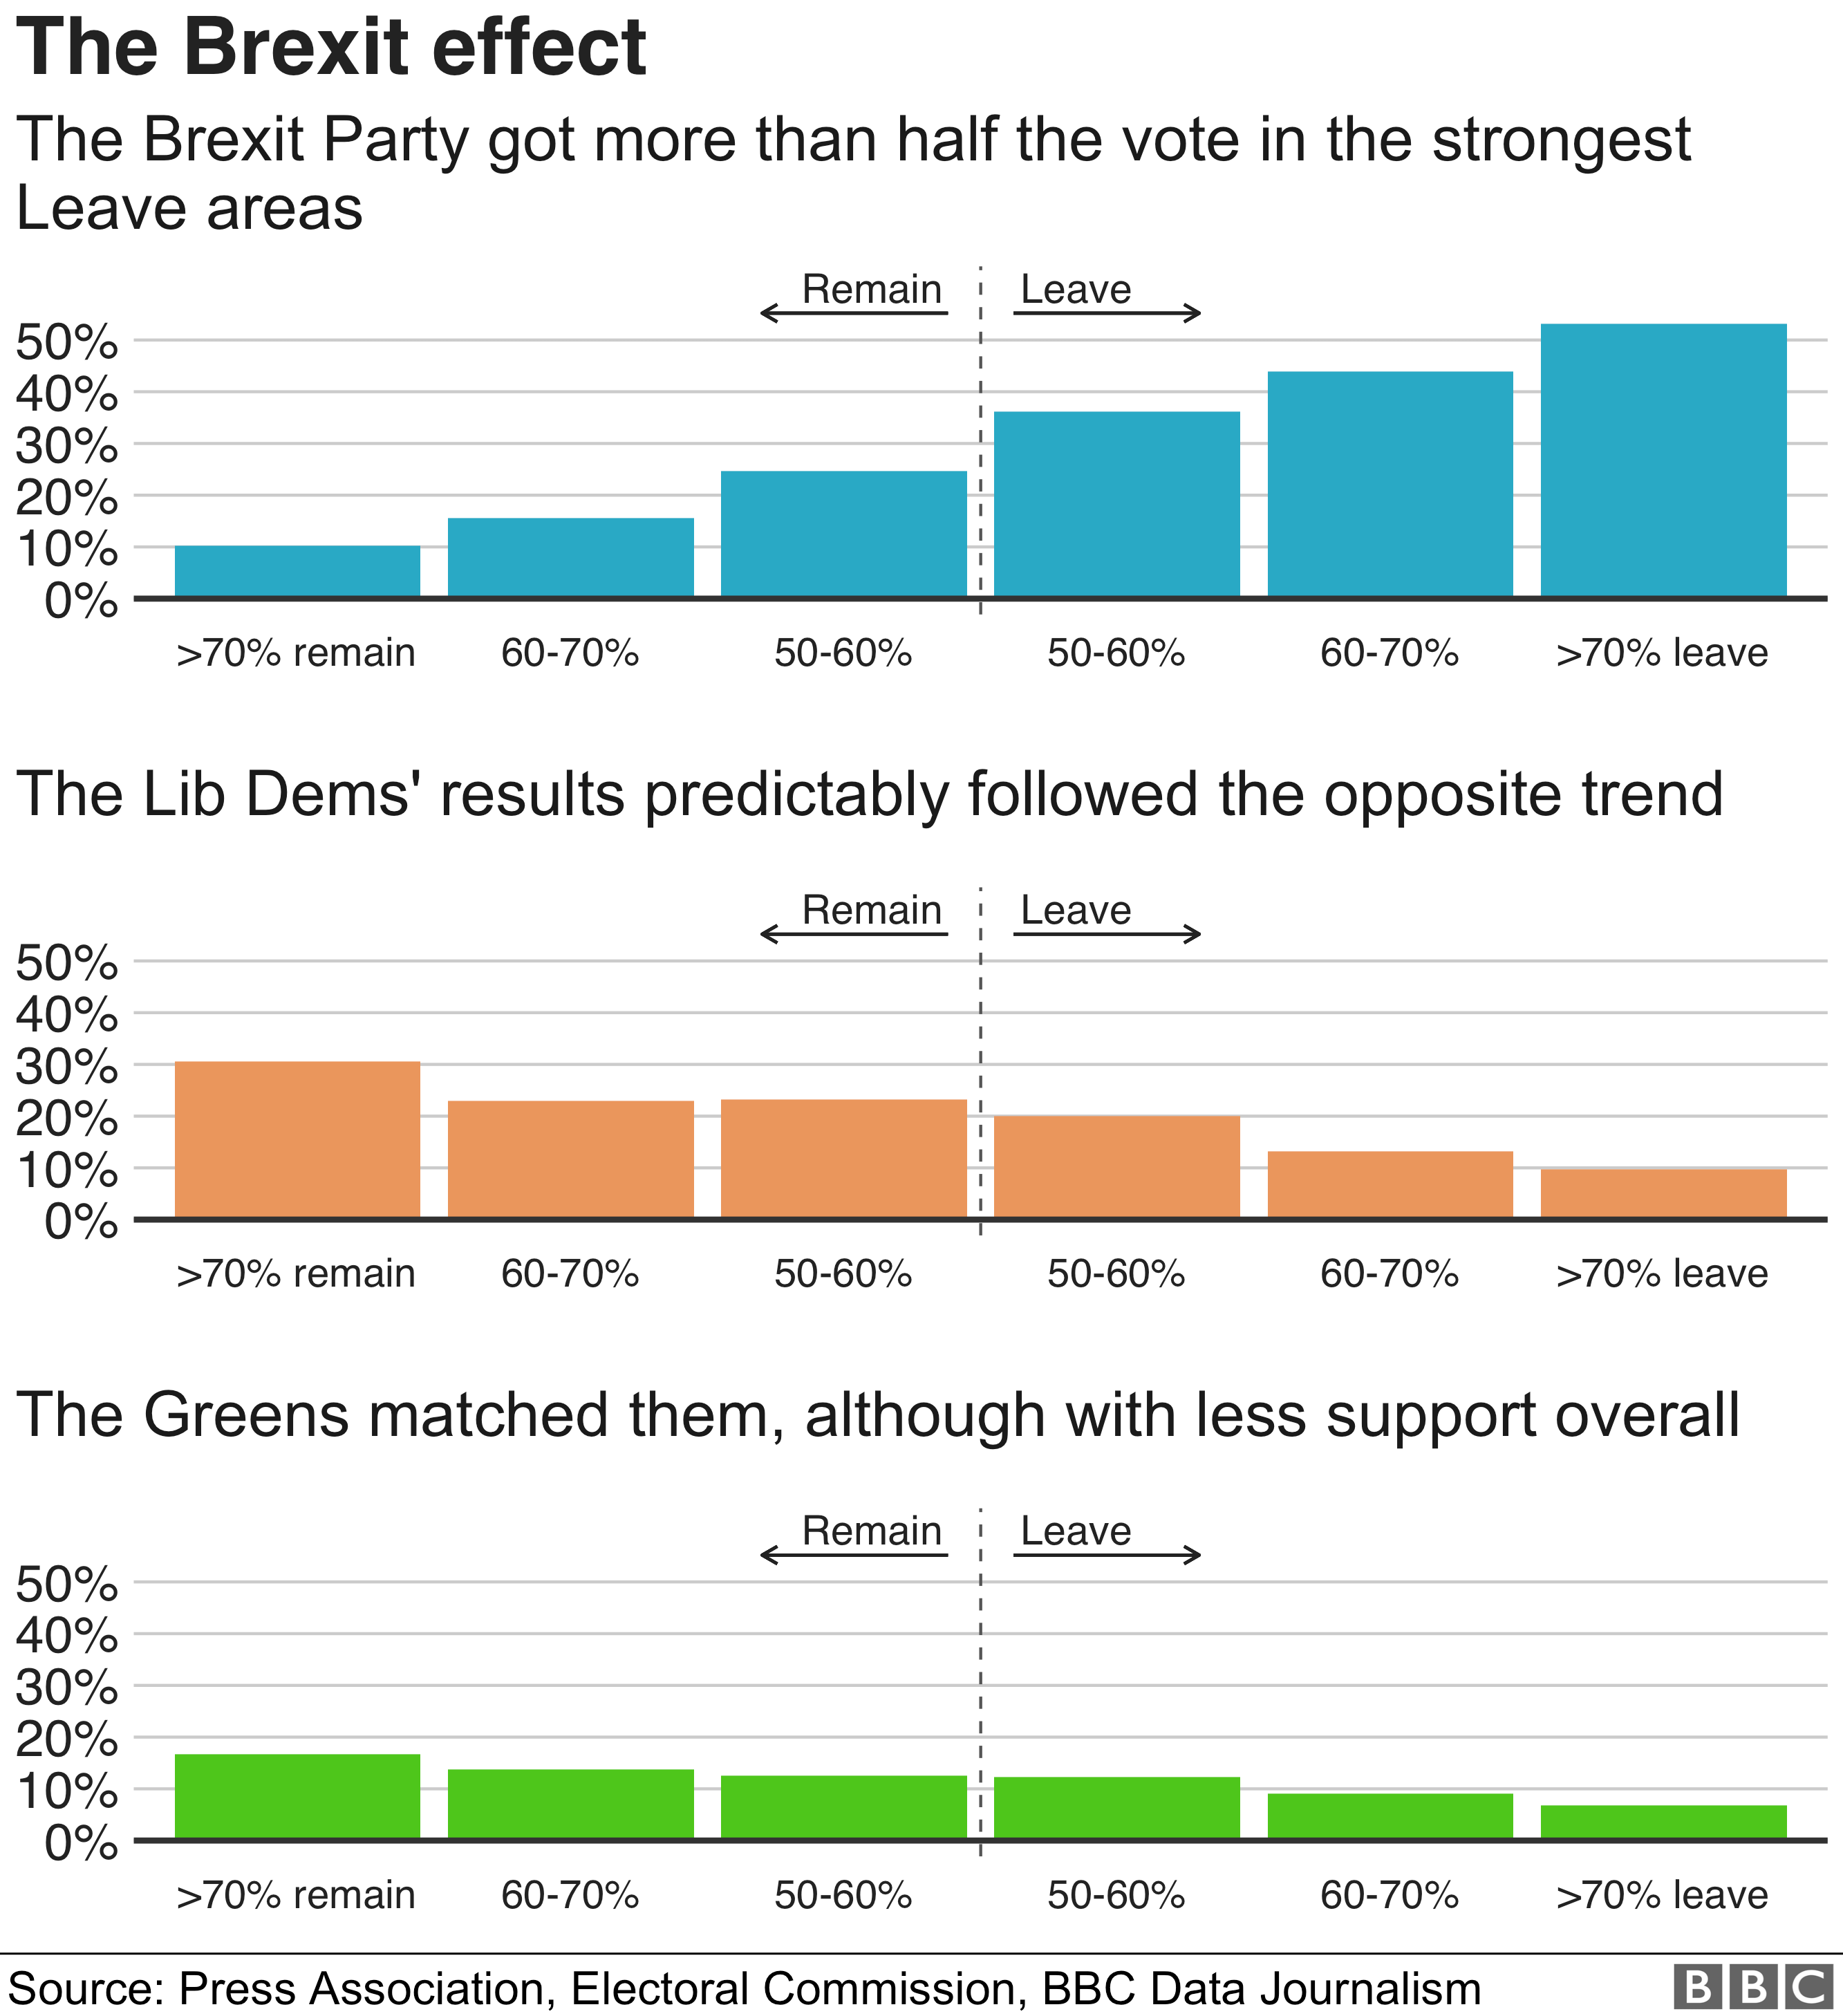 The Brexit party got more than half the vote in the highest Leave areas